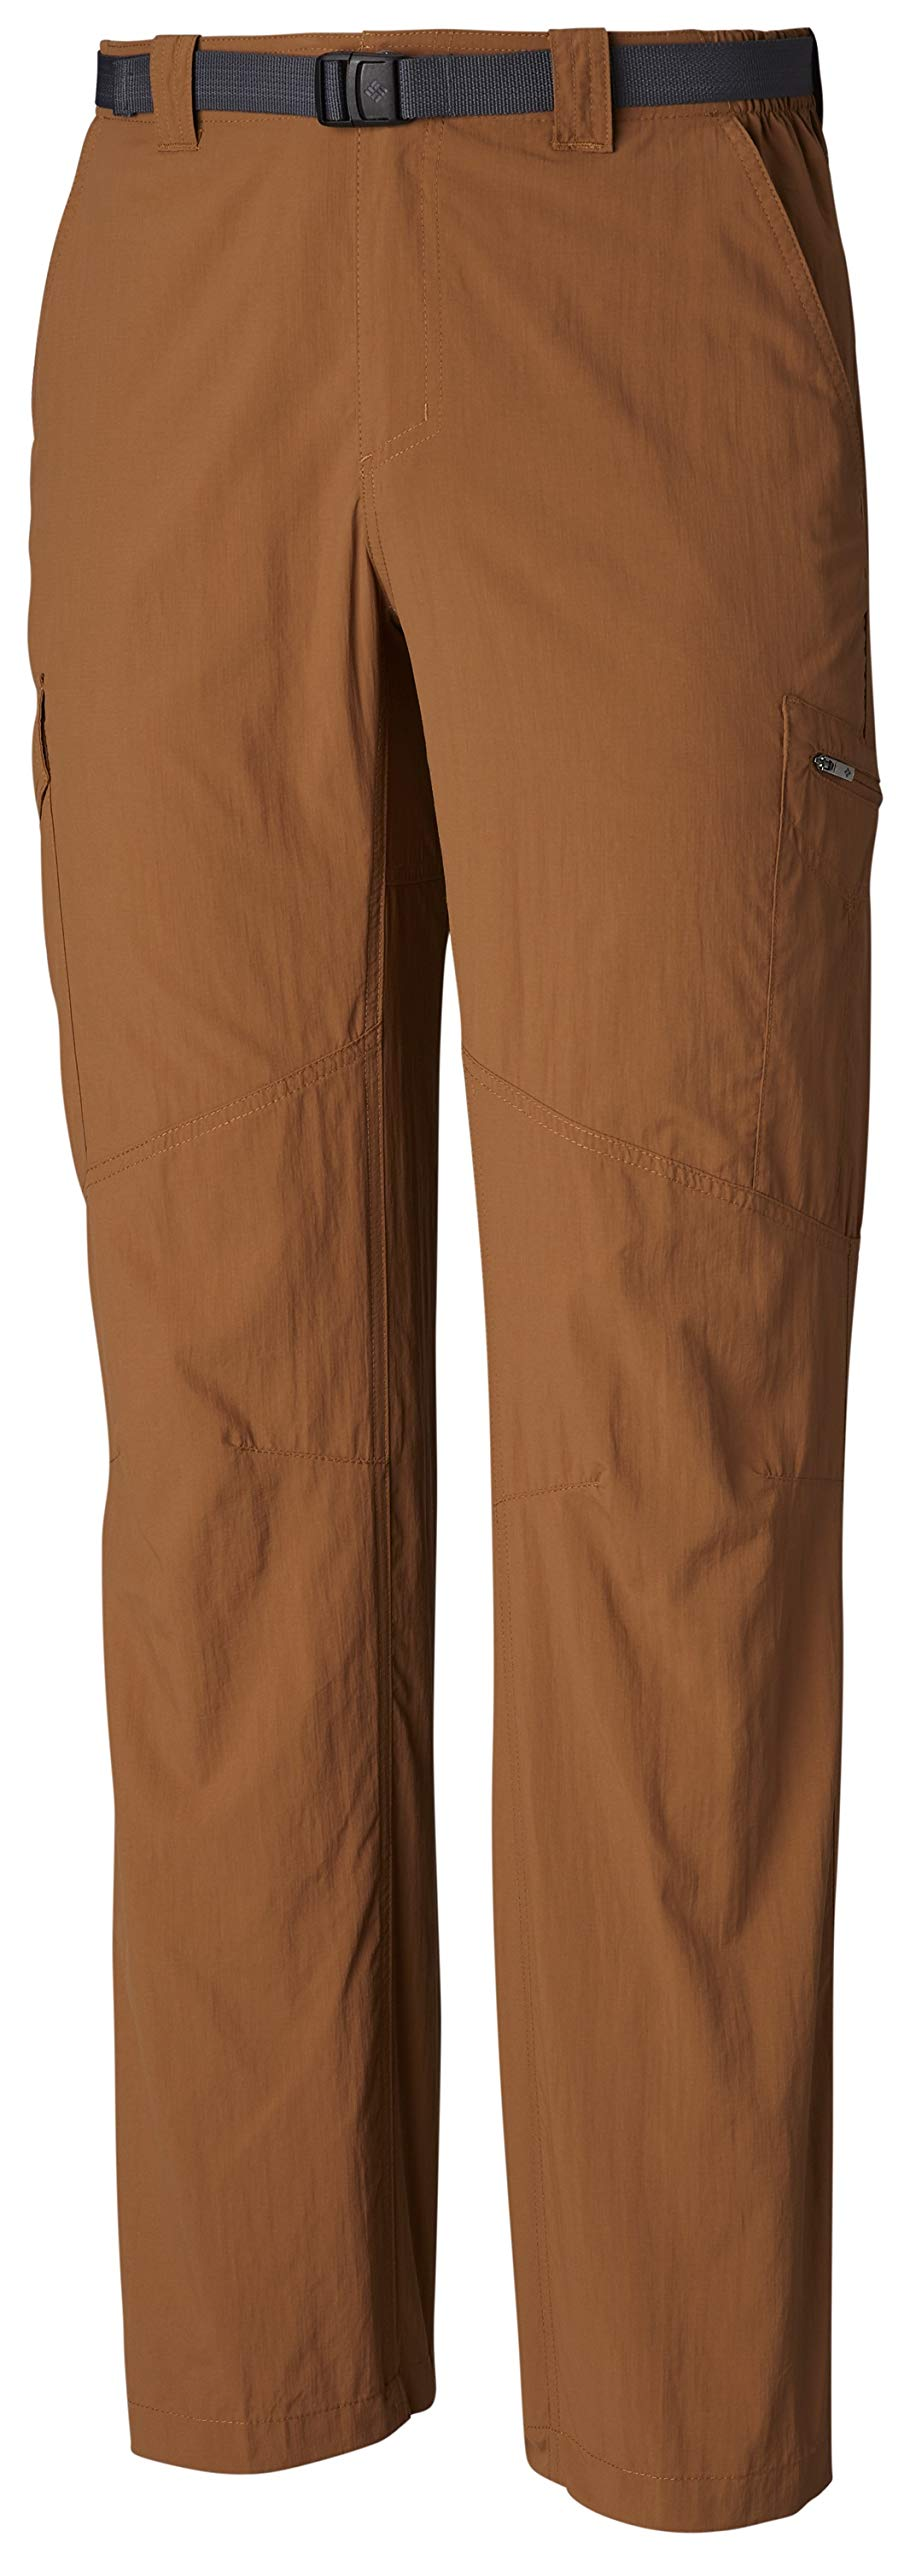 Columbia Men's Silver Ridge Cargo Pant, Camel Brown, 30x30